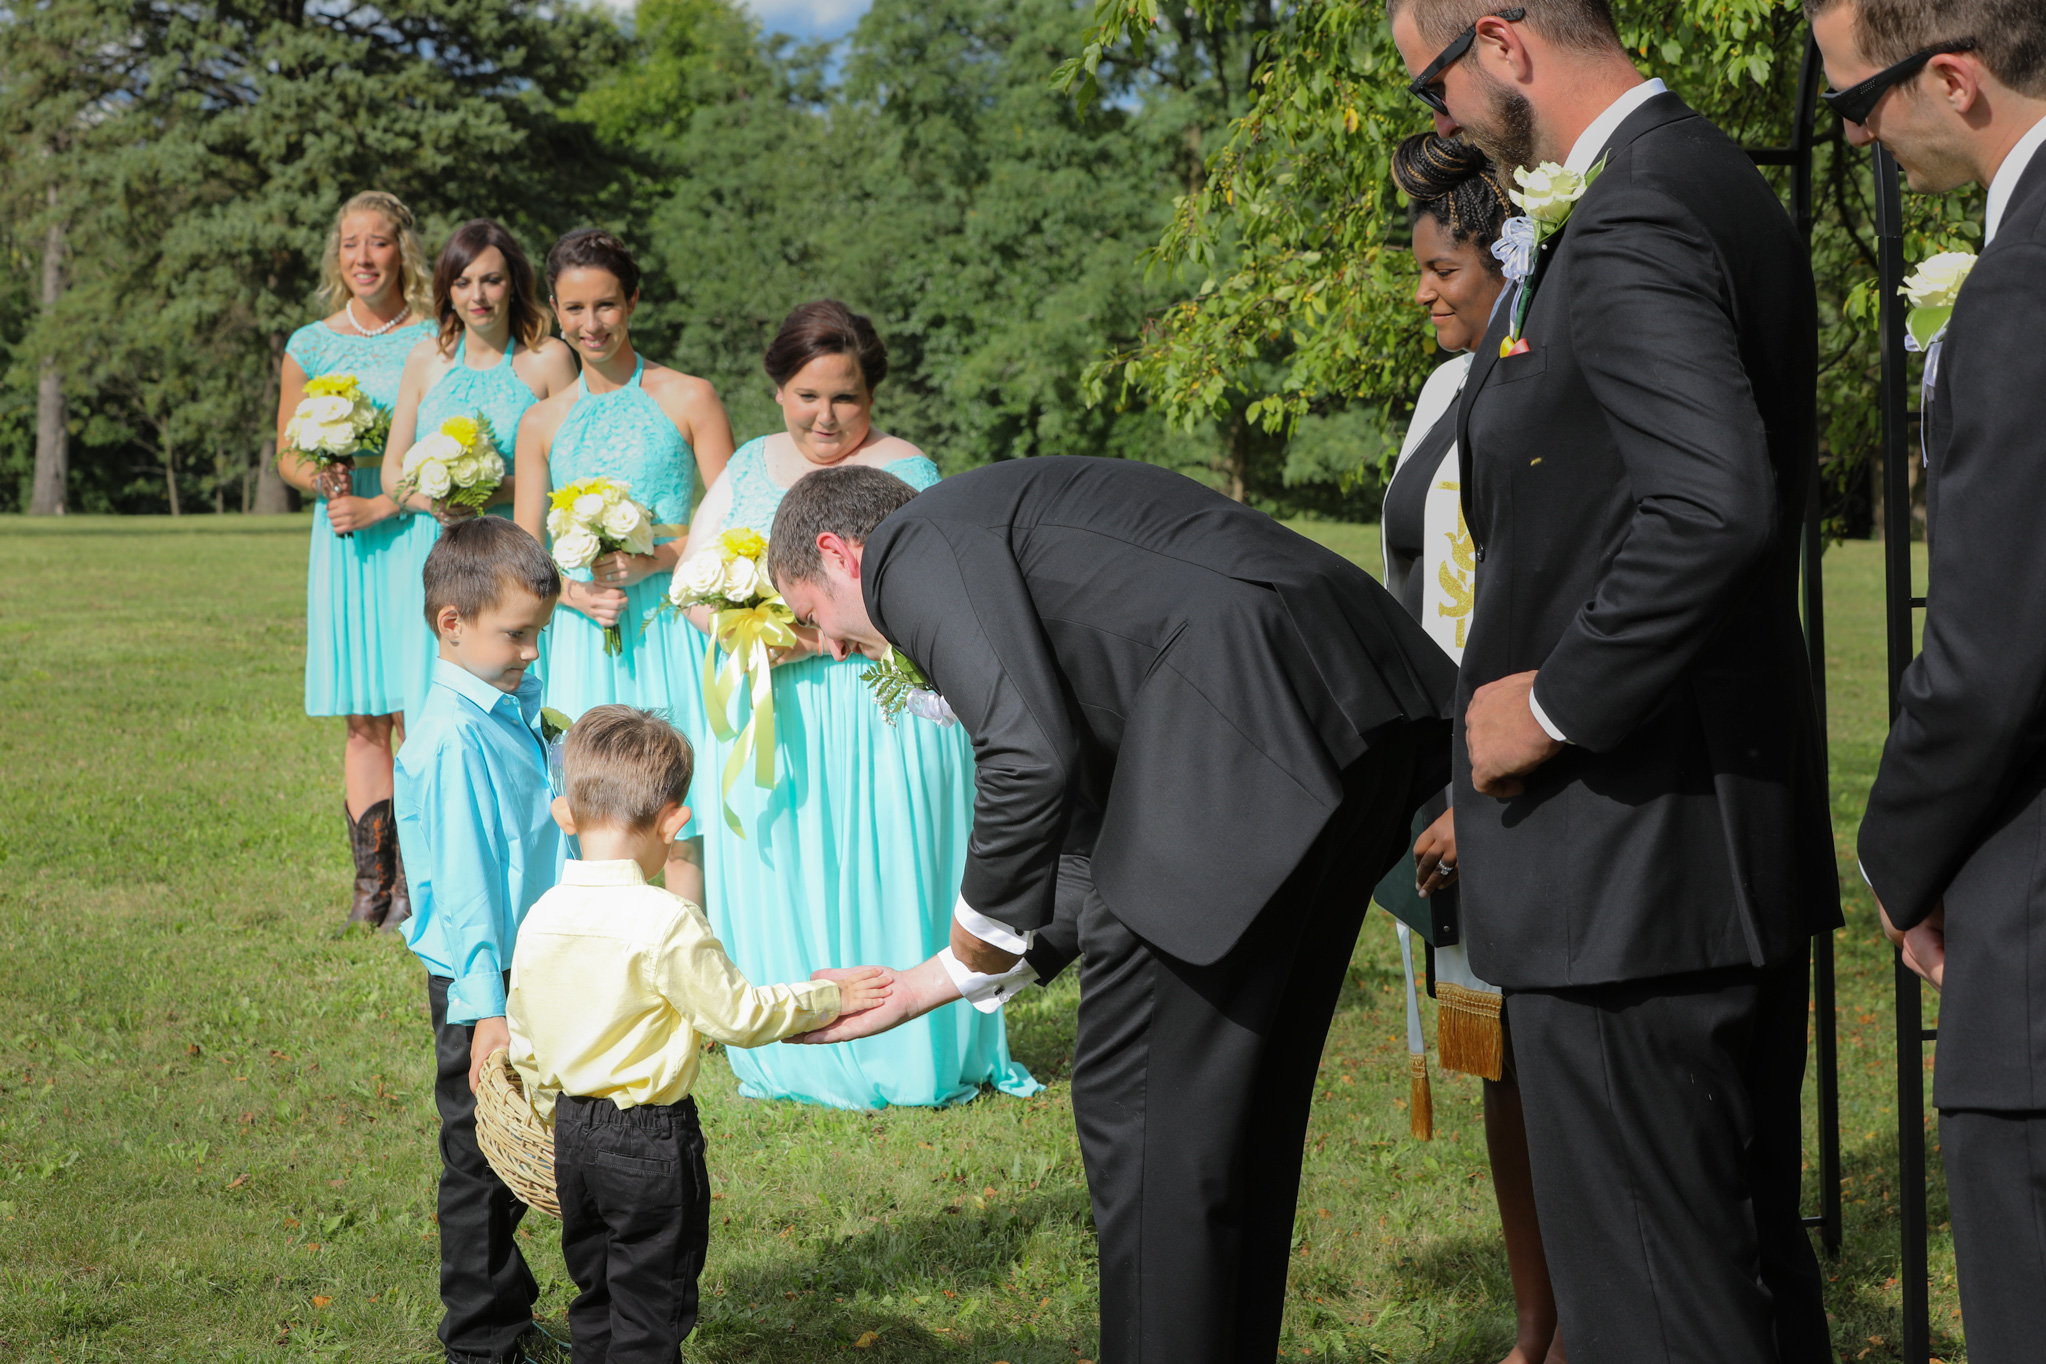 Annie_Matthew_barrington_wedding_outdoor_4.jpg